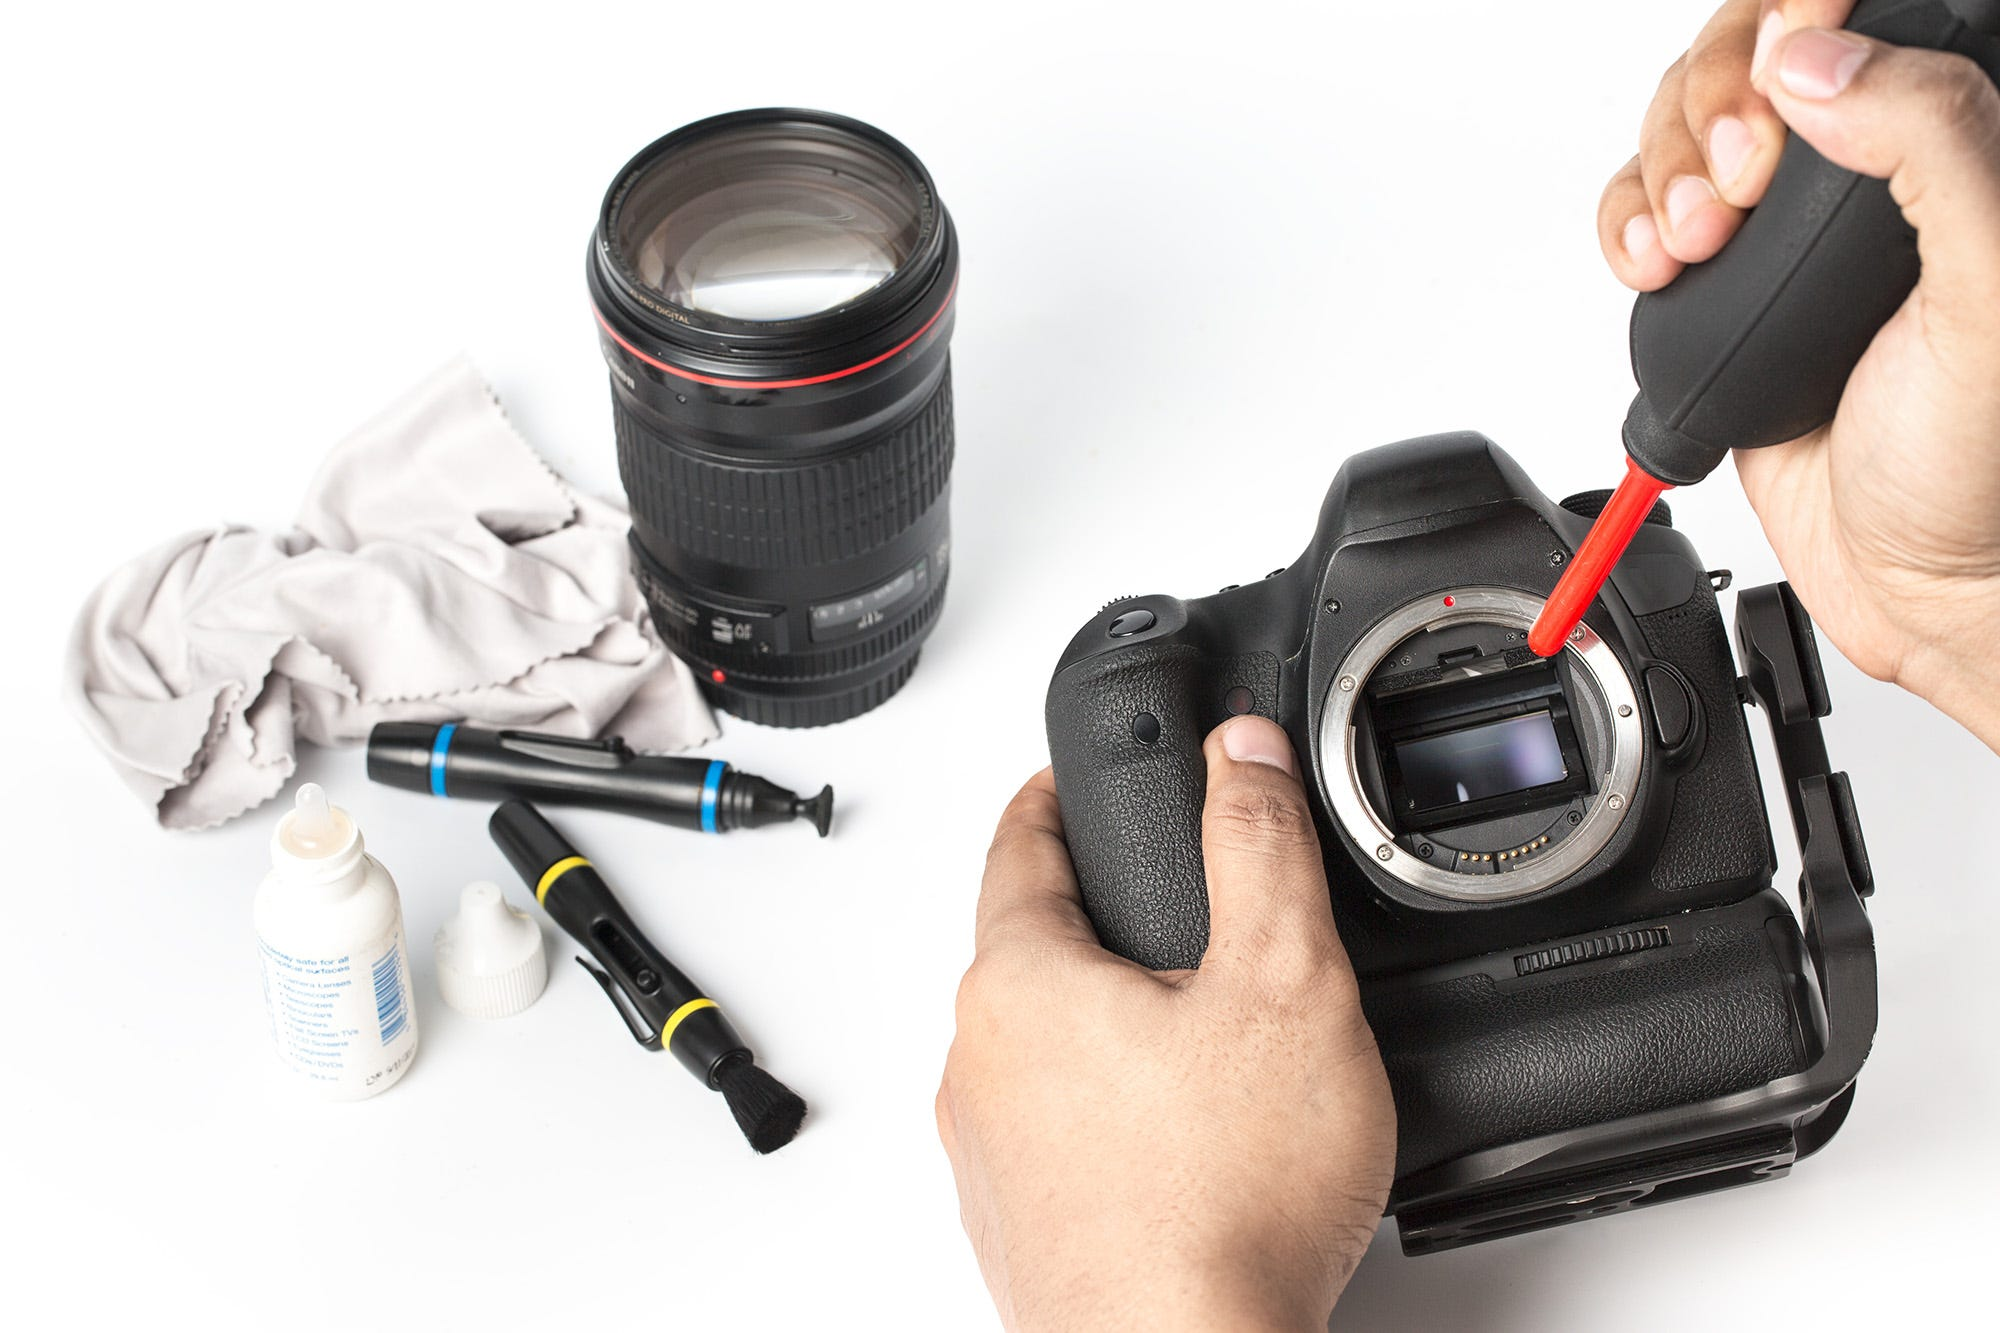 The Secret Of Effectively And Safely Cleaning Your Digital Camera Kit 7 In 1 Nikon Sensor